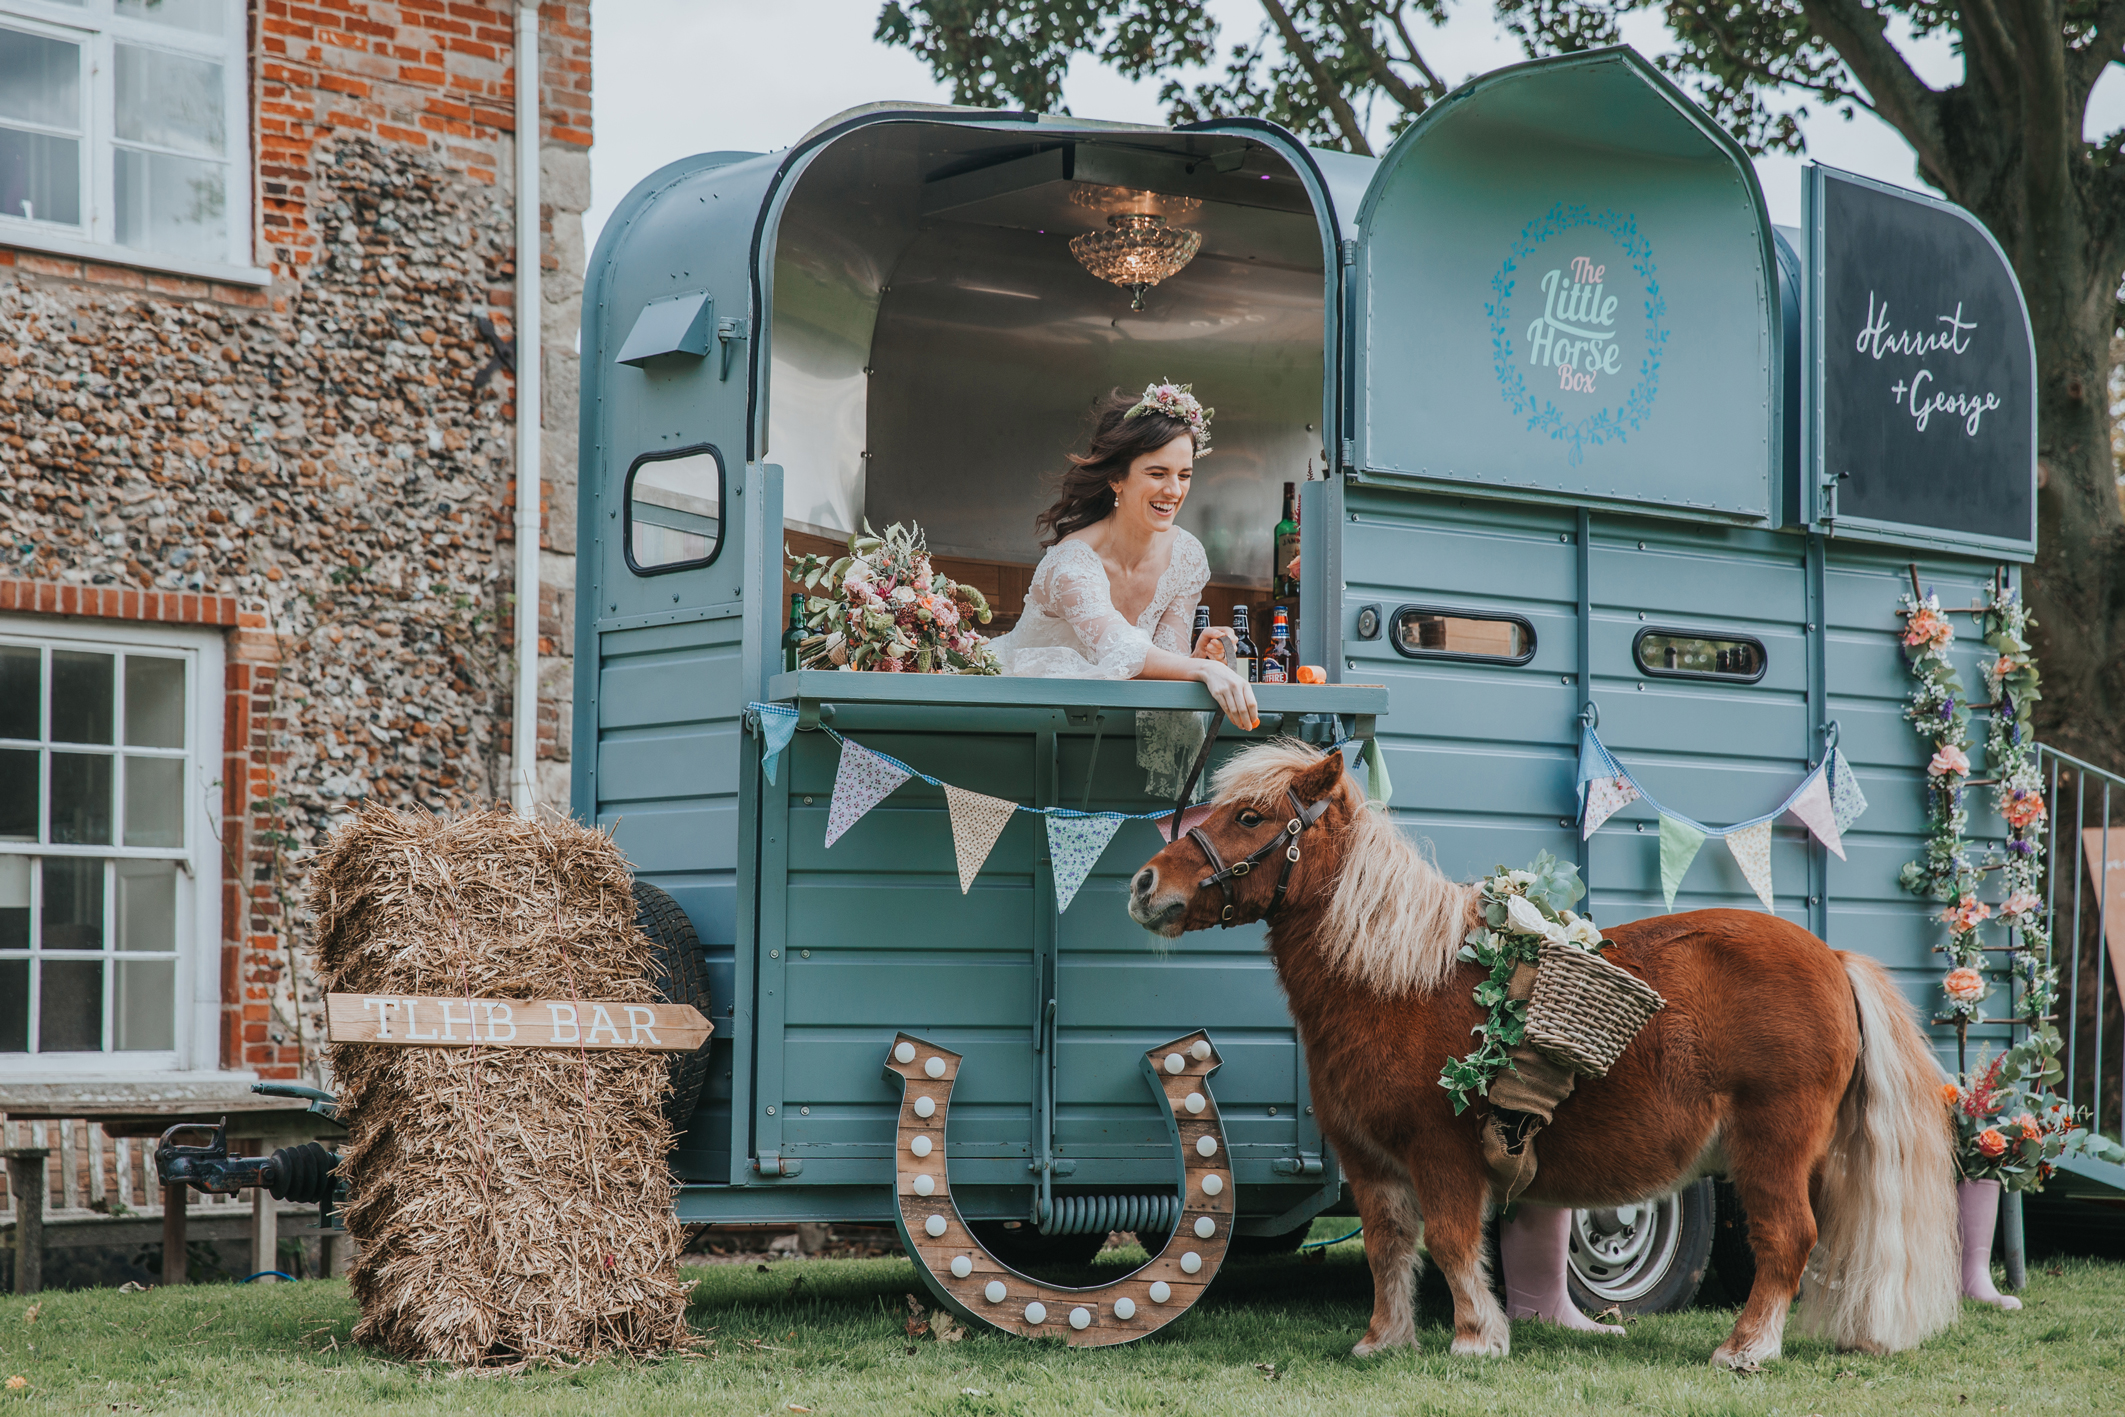 Esther_Wild_Little_Horse_Box_Norfolk_Wedding_IMG_2983.jpg